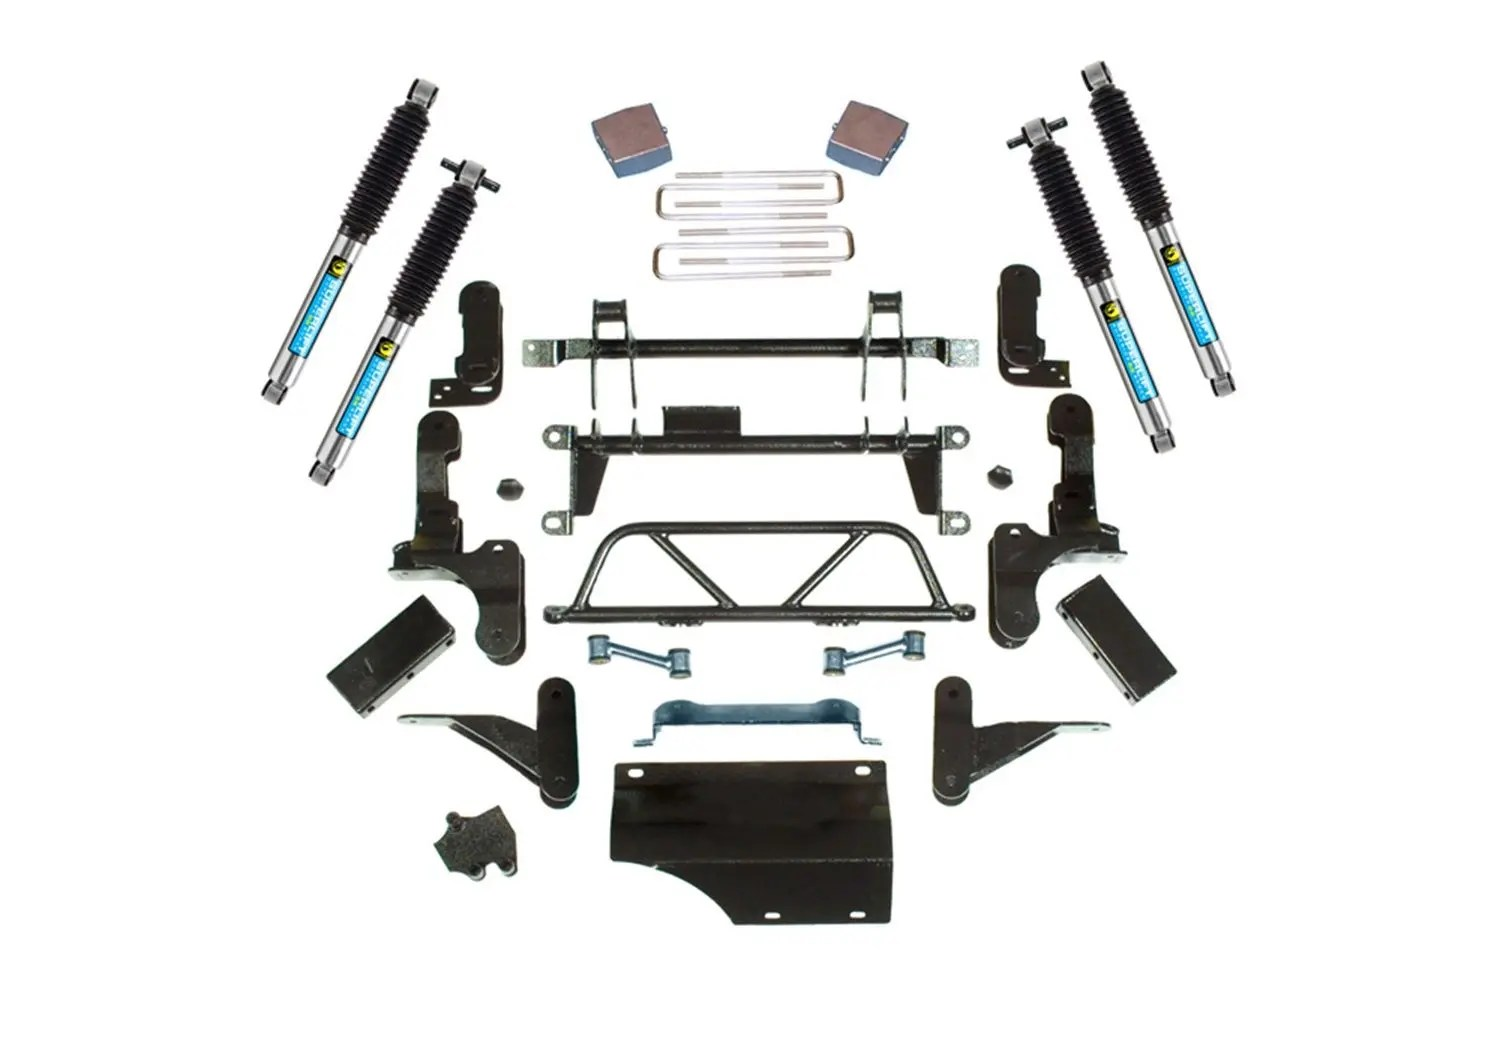 hight resolution of superlift 5 7 adjustable lift kit 93 95 k2500 k3500 8 lug 4wd w bilstein shocks